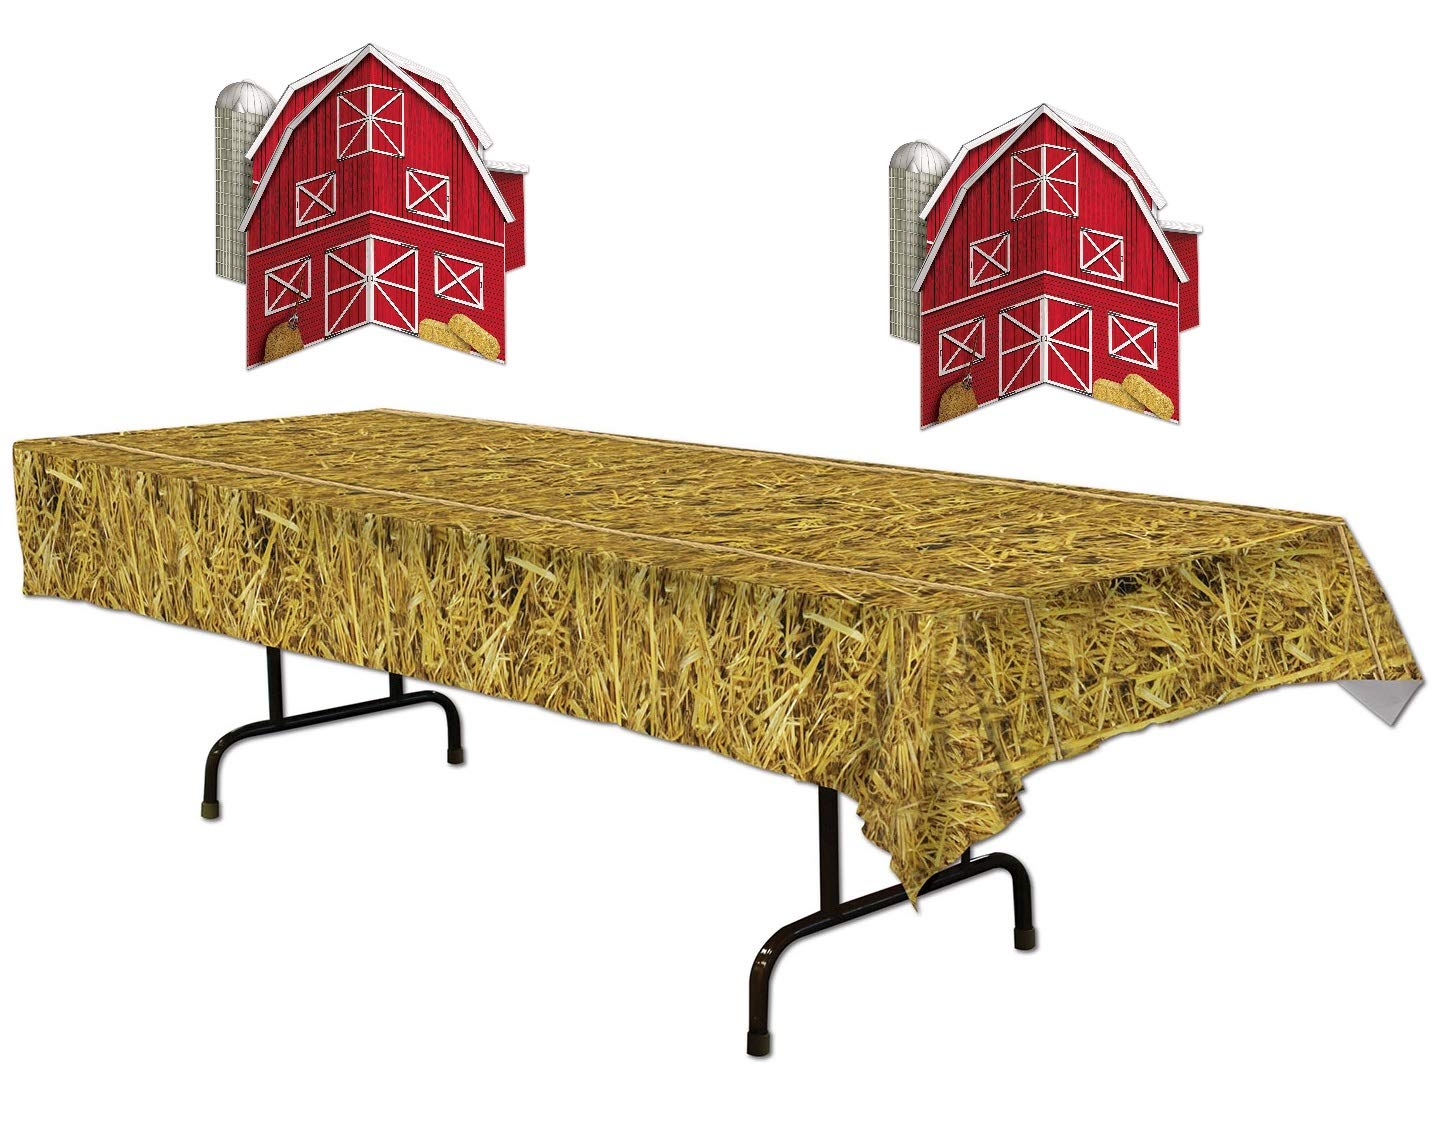 Farm Table Décor Bundle | Includes Straw Tablecover and Two 3-D Barn Centerpieces by The Beistle Manufacturing Company